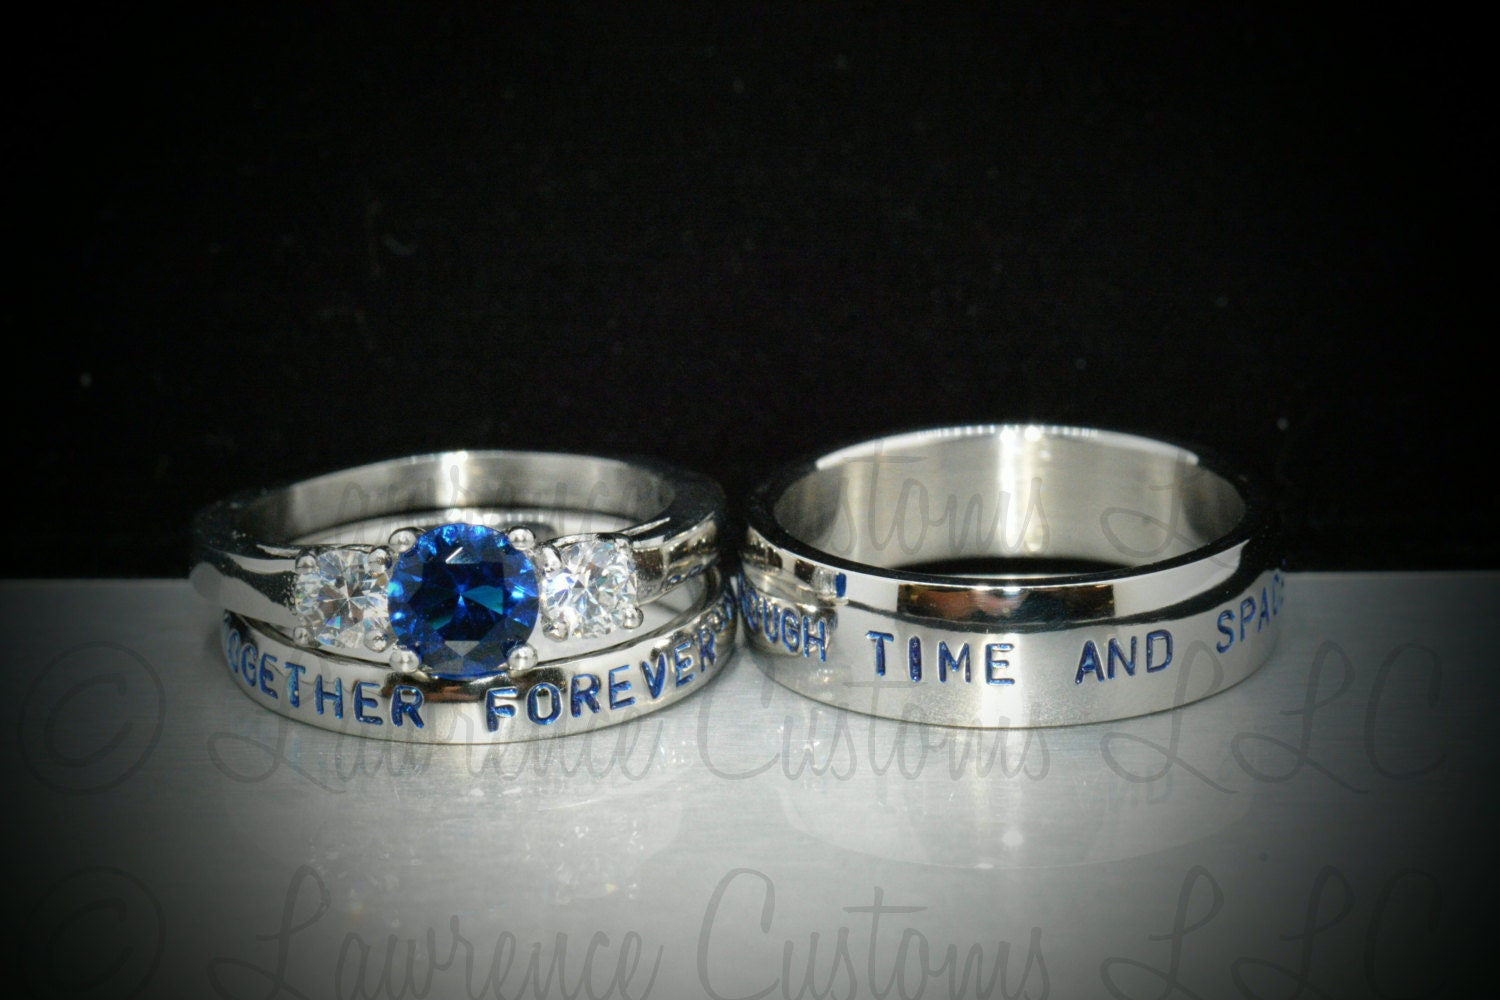 3 Piece Wedding SetHand Stamped Stainless Steel CZ Sapphire